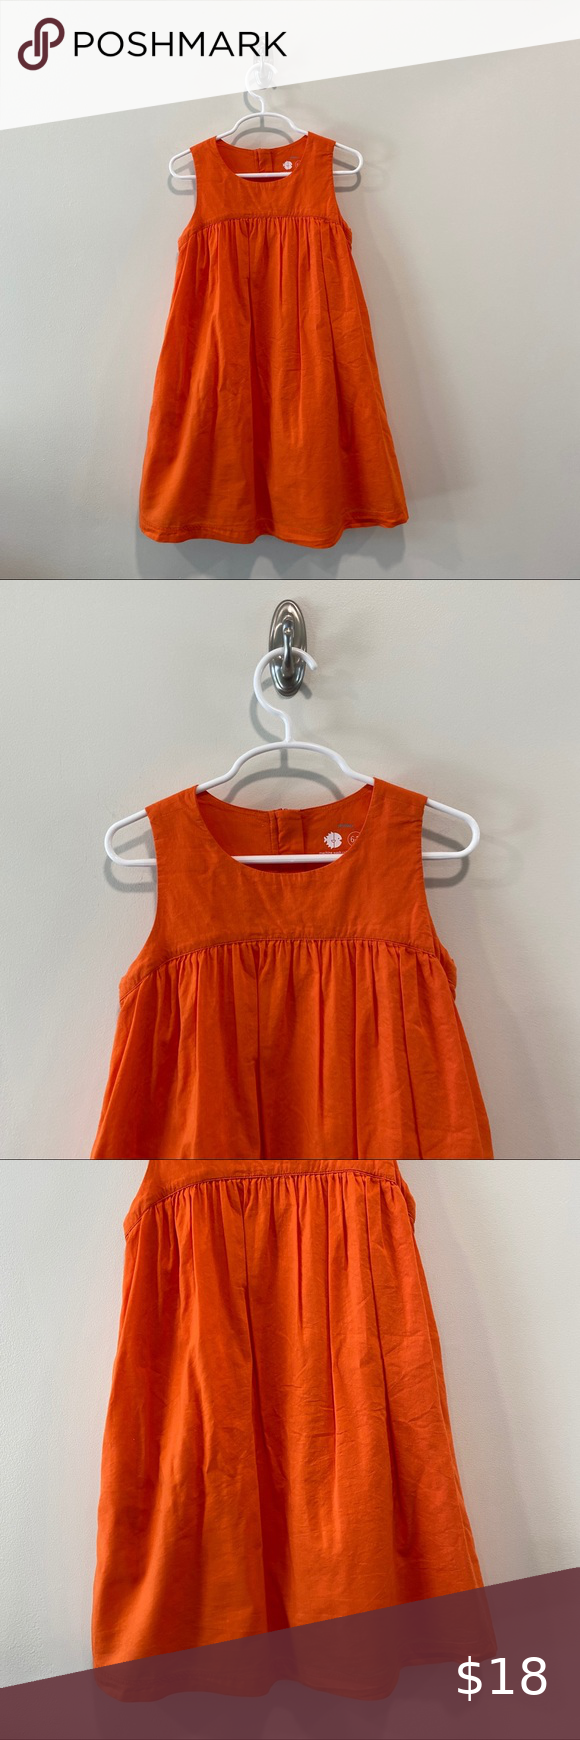 Primary Swing Dress In Orange Primary Swing Dress In Size 6 7 In A Soft Orange Zips Up The Back And Has Side Pockets But In 2020 Swing Dress Dresses Colorful Dresses